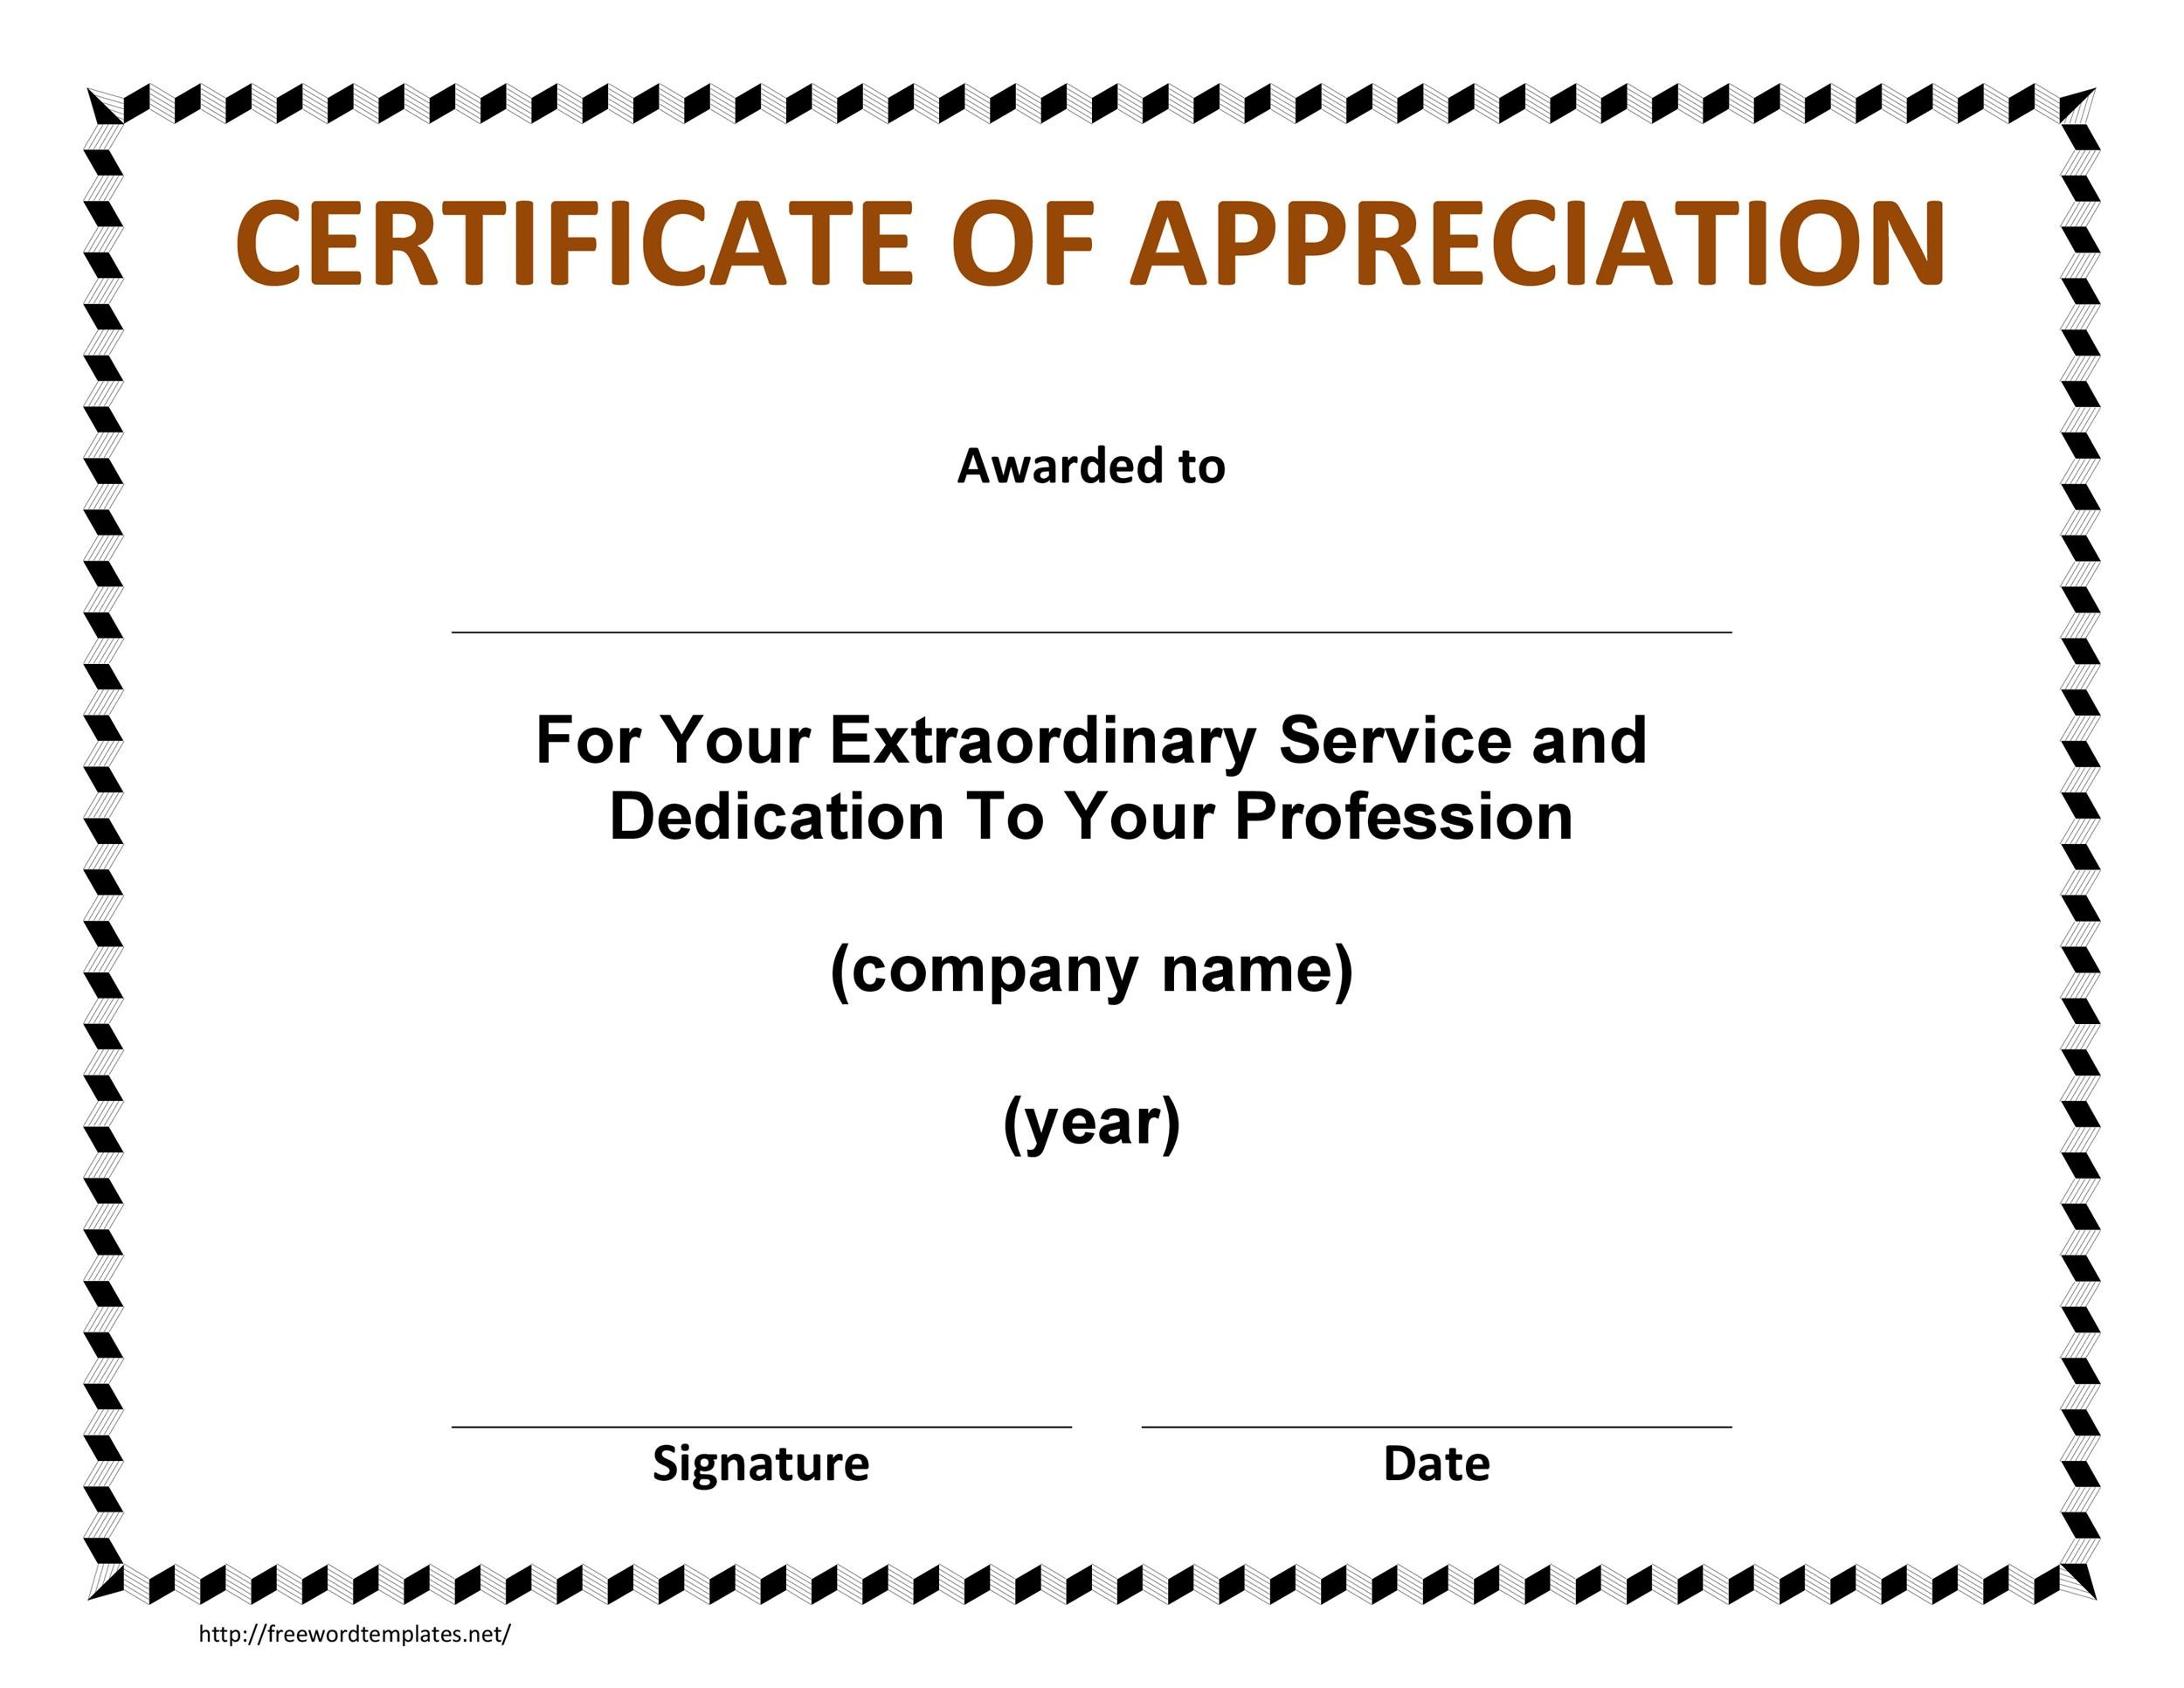 30 free certificate of appreciation templates and letters printable certificate of appreciation 04 spiritdancerdesigns